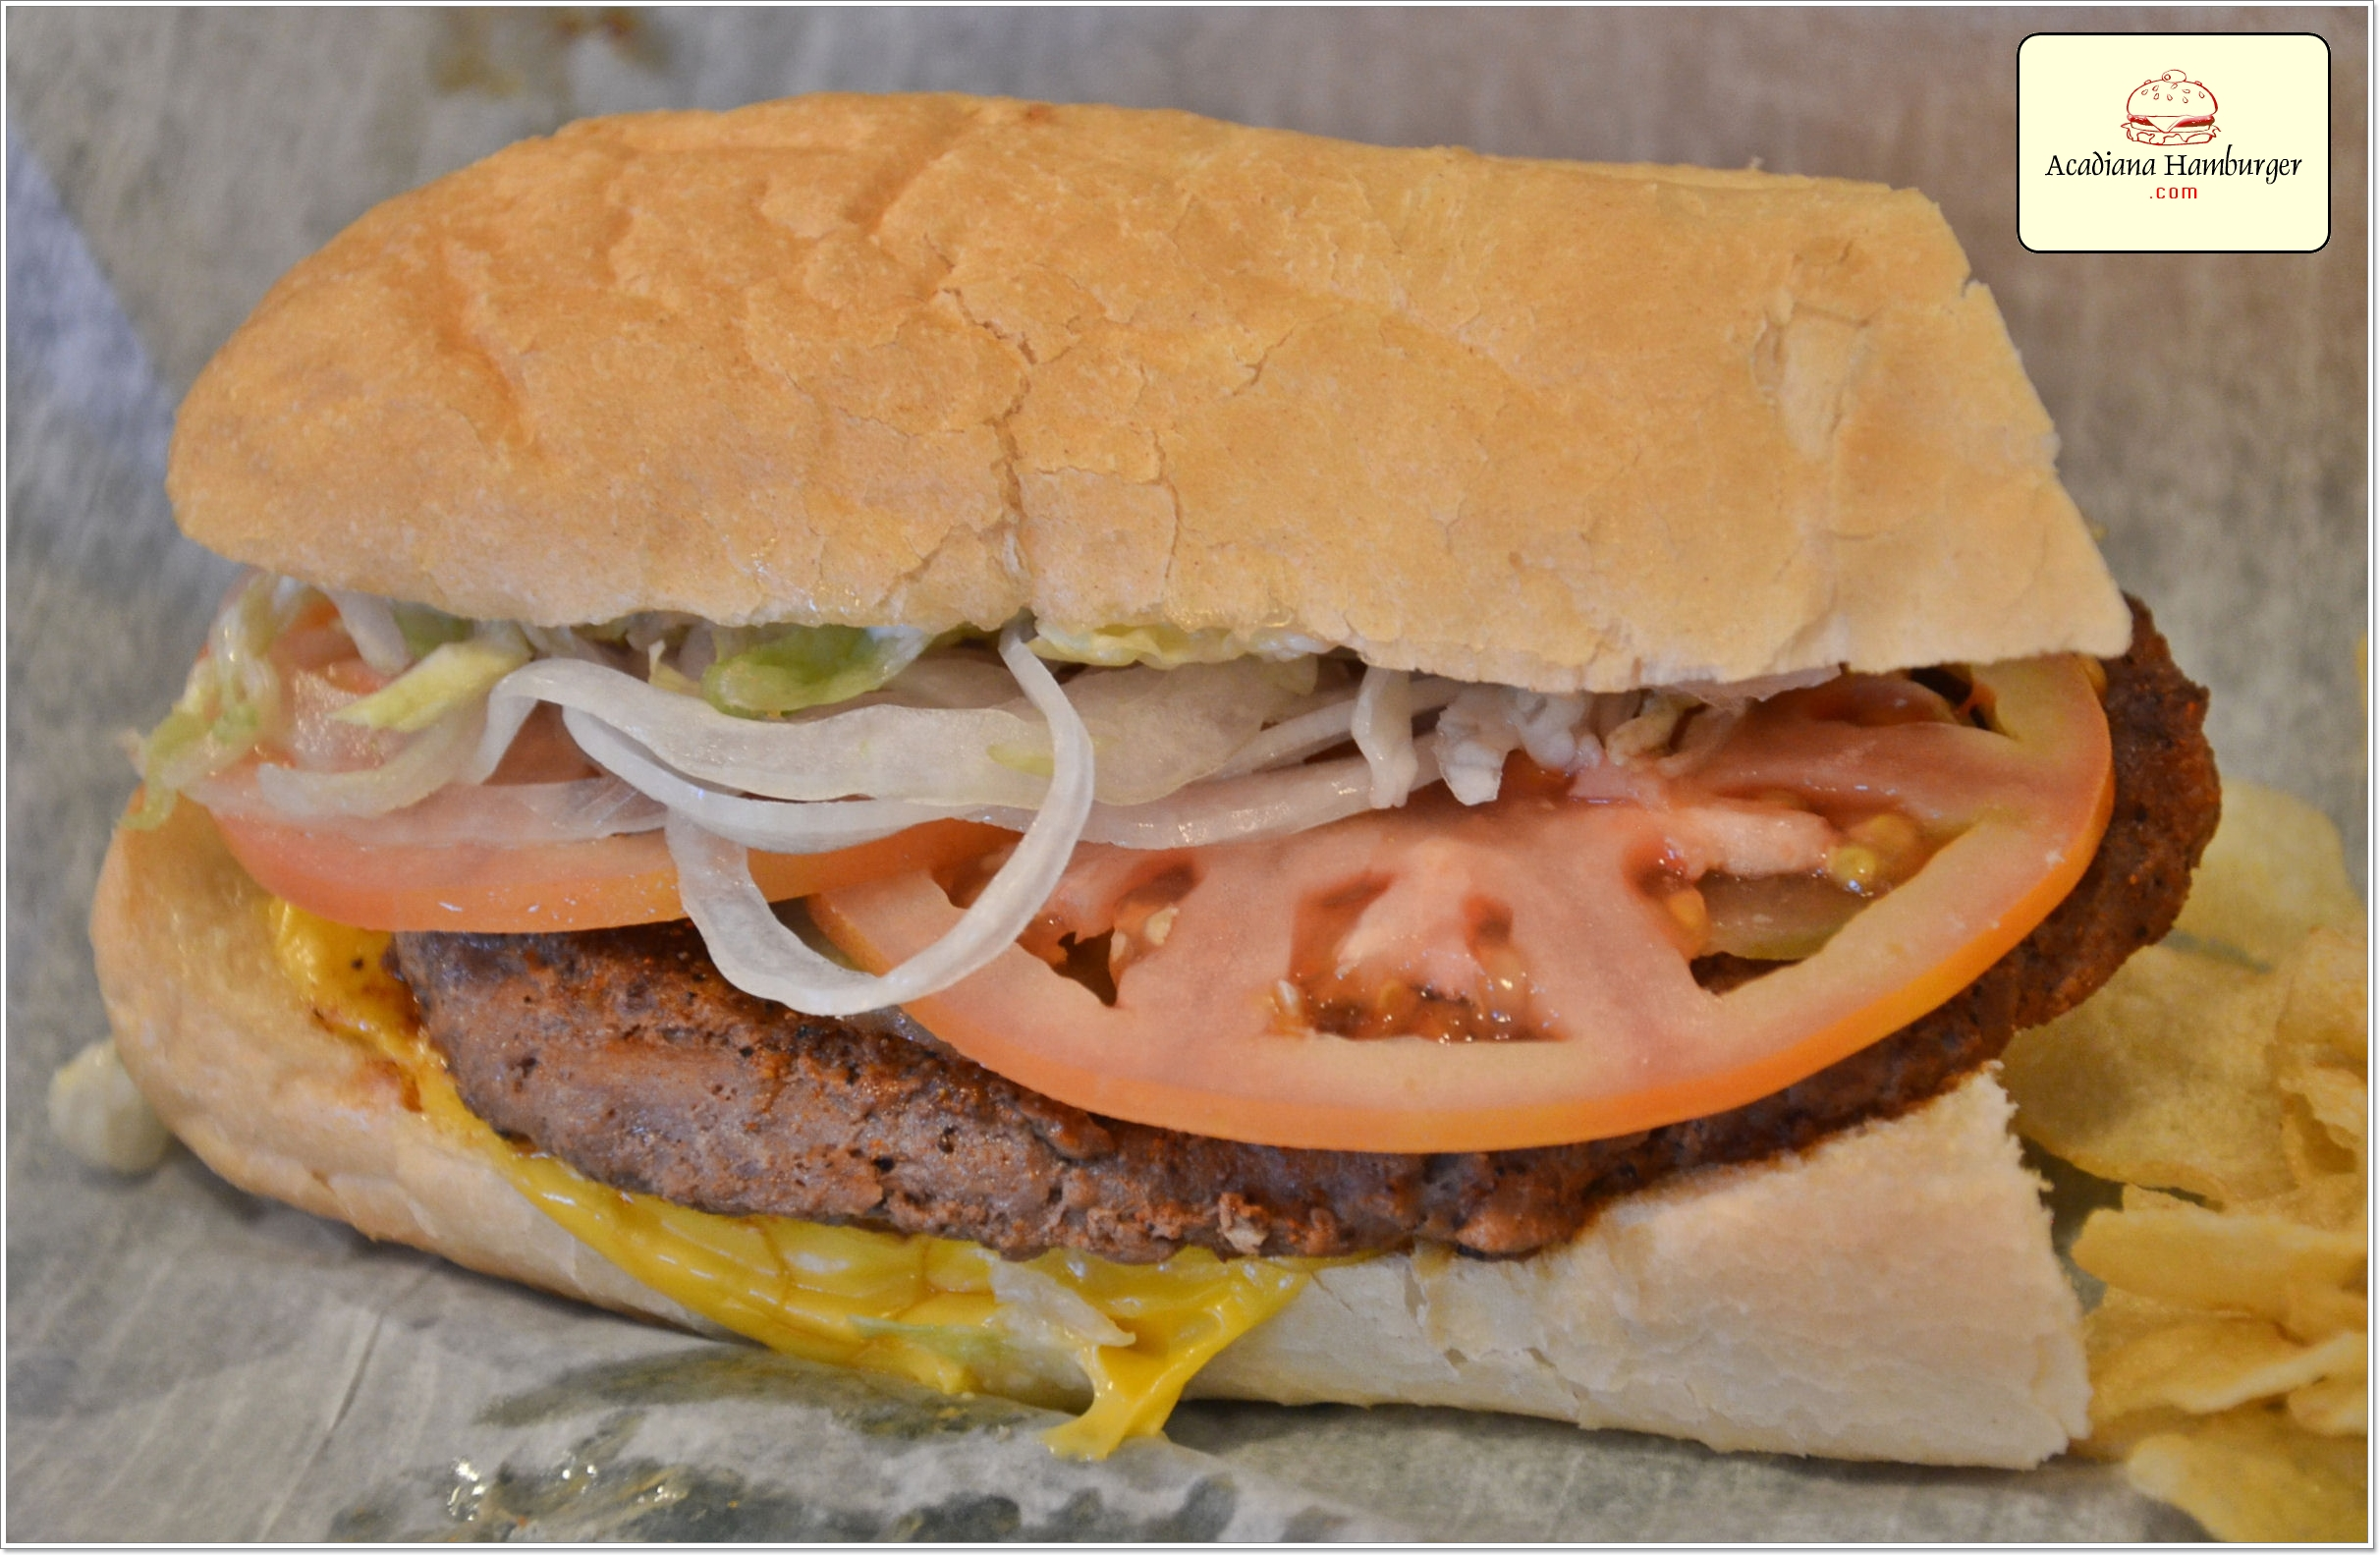 Juliens Poboys Hamburger Po-Boy in Broussard, LA and Lafayette, LA Photo by Kevin Ste Marie